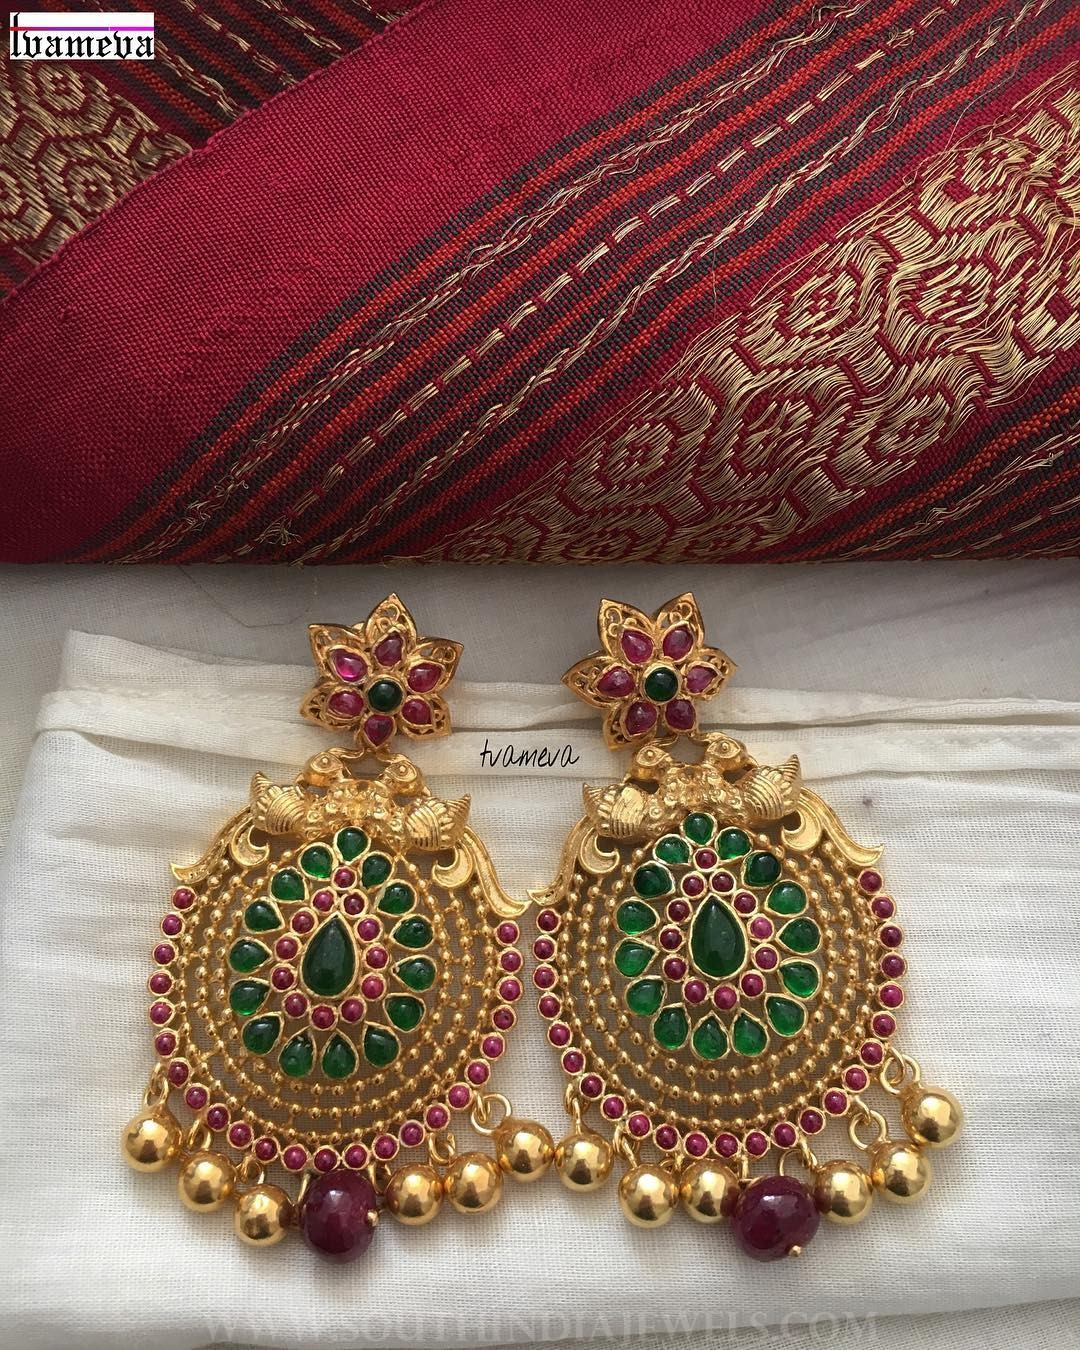 Royal gold plated stone earrings tvameva